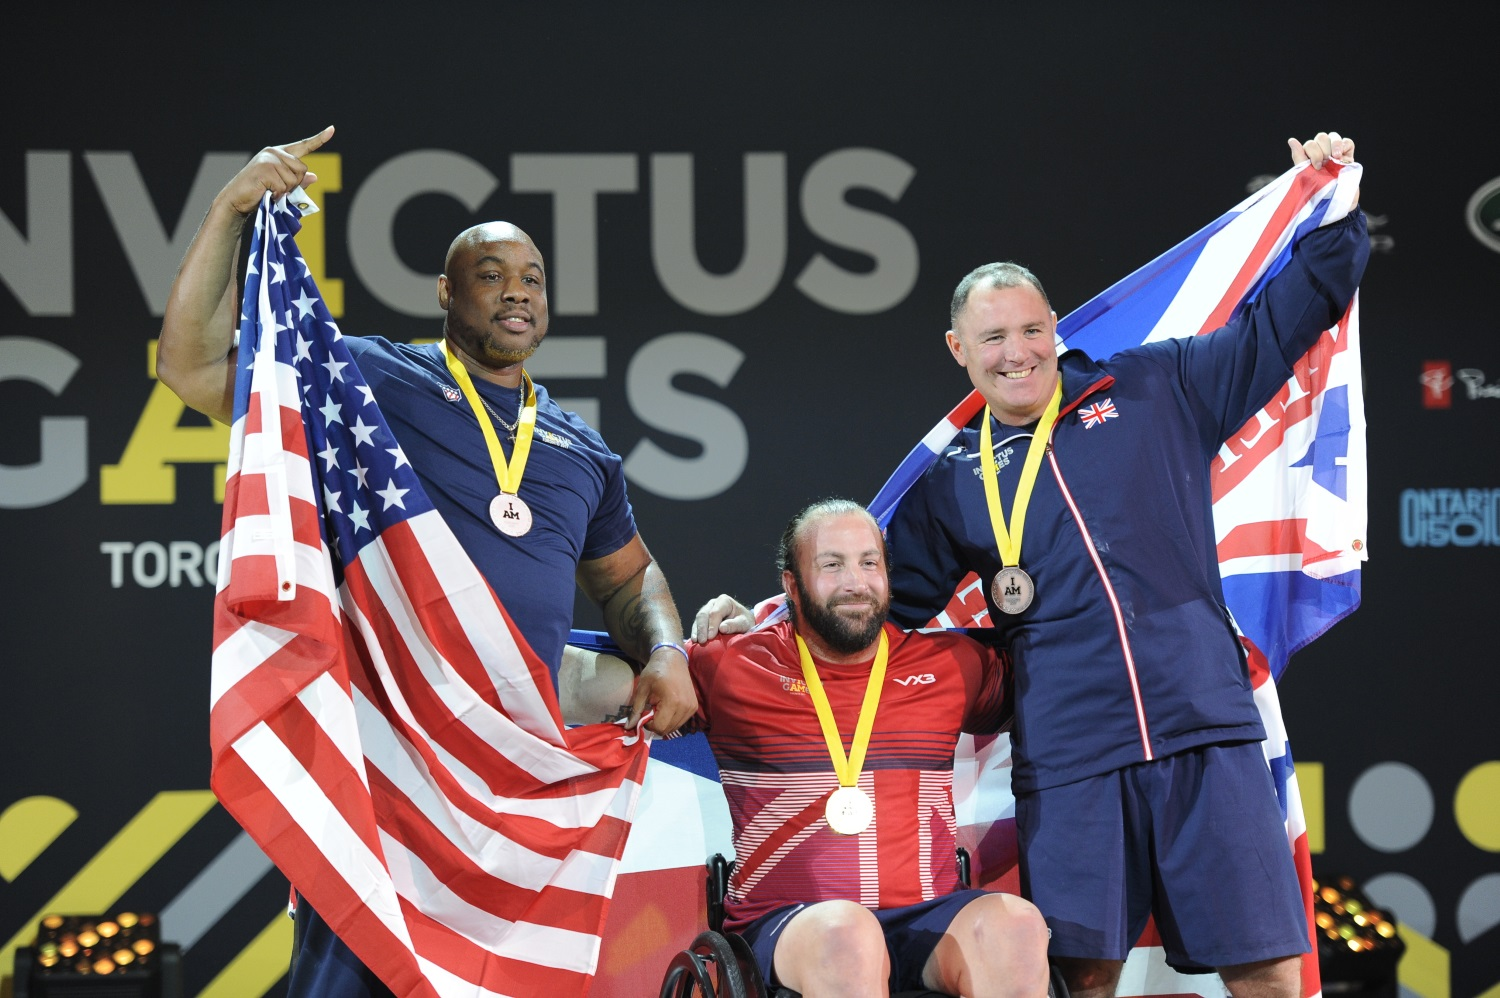 The three men's powerlifting competition finalists pose for a photo after a medal ceremony during the 2017 Invictus Games at the Mattamy Athletics Centre in Toronto, Canada, on Sept. 26, 2017. Retired U.S. Air Force Staff Sgt. Nathaniel Bias, left, won silver. The Invictus Games are the sole international adaptive sporting event for injured active-duty and veteran service members. (Staff Sgt. Jannelle McRae/Air Force)